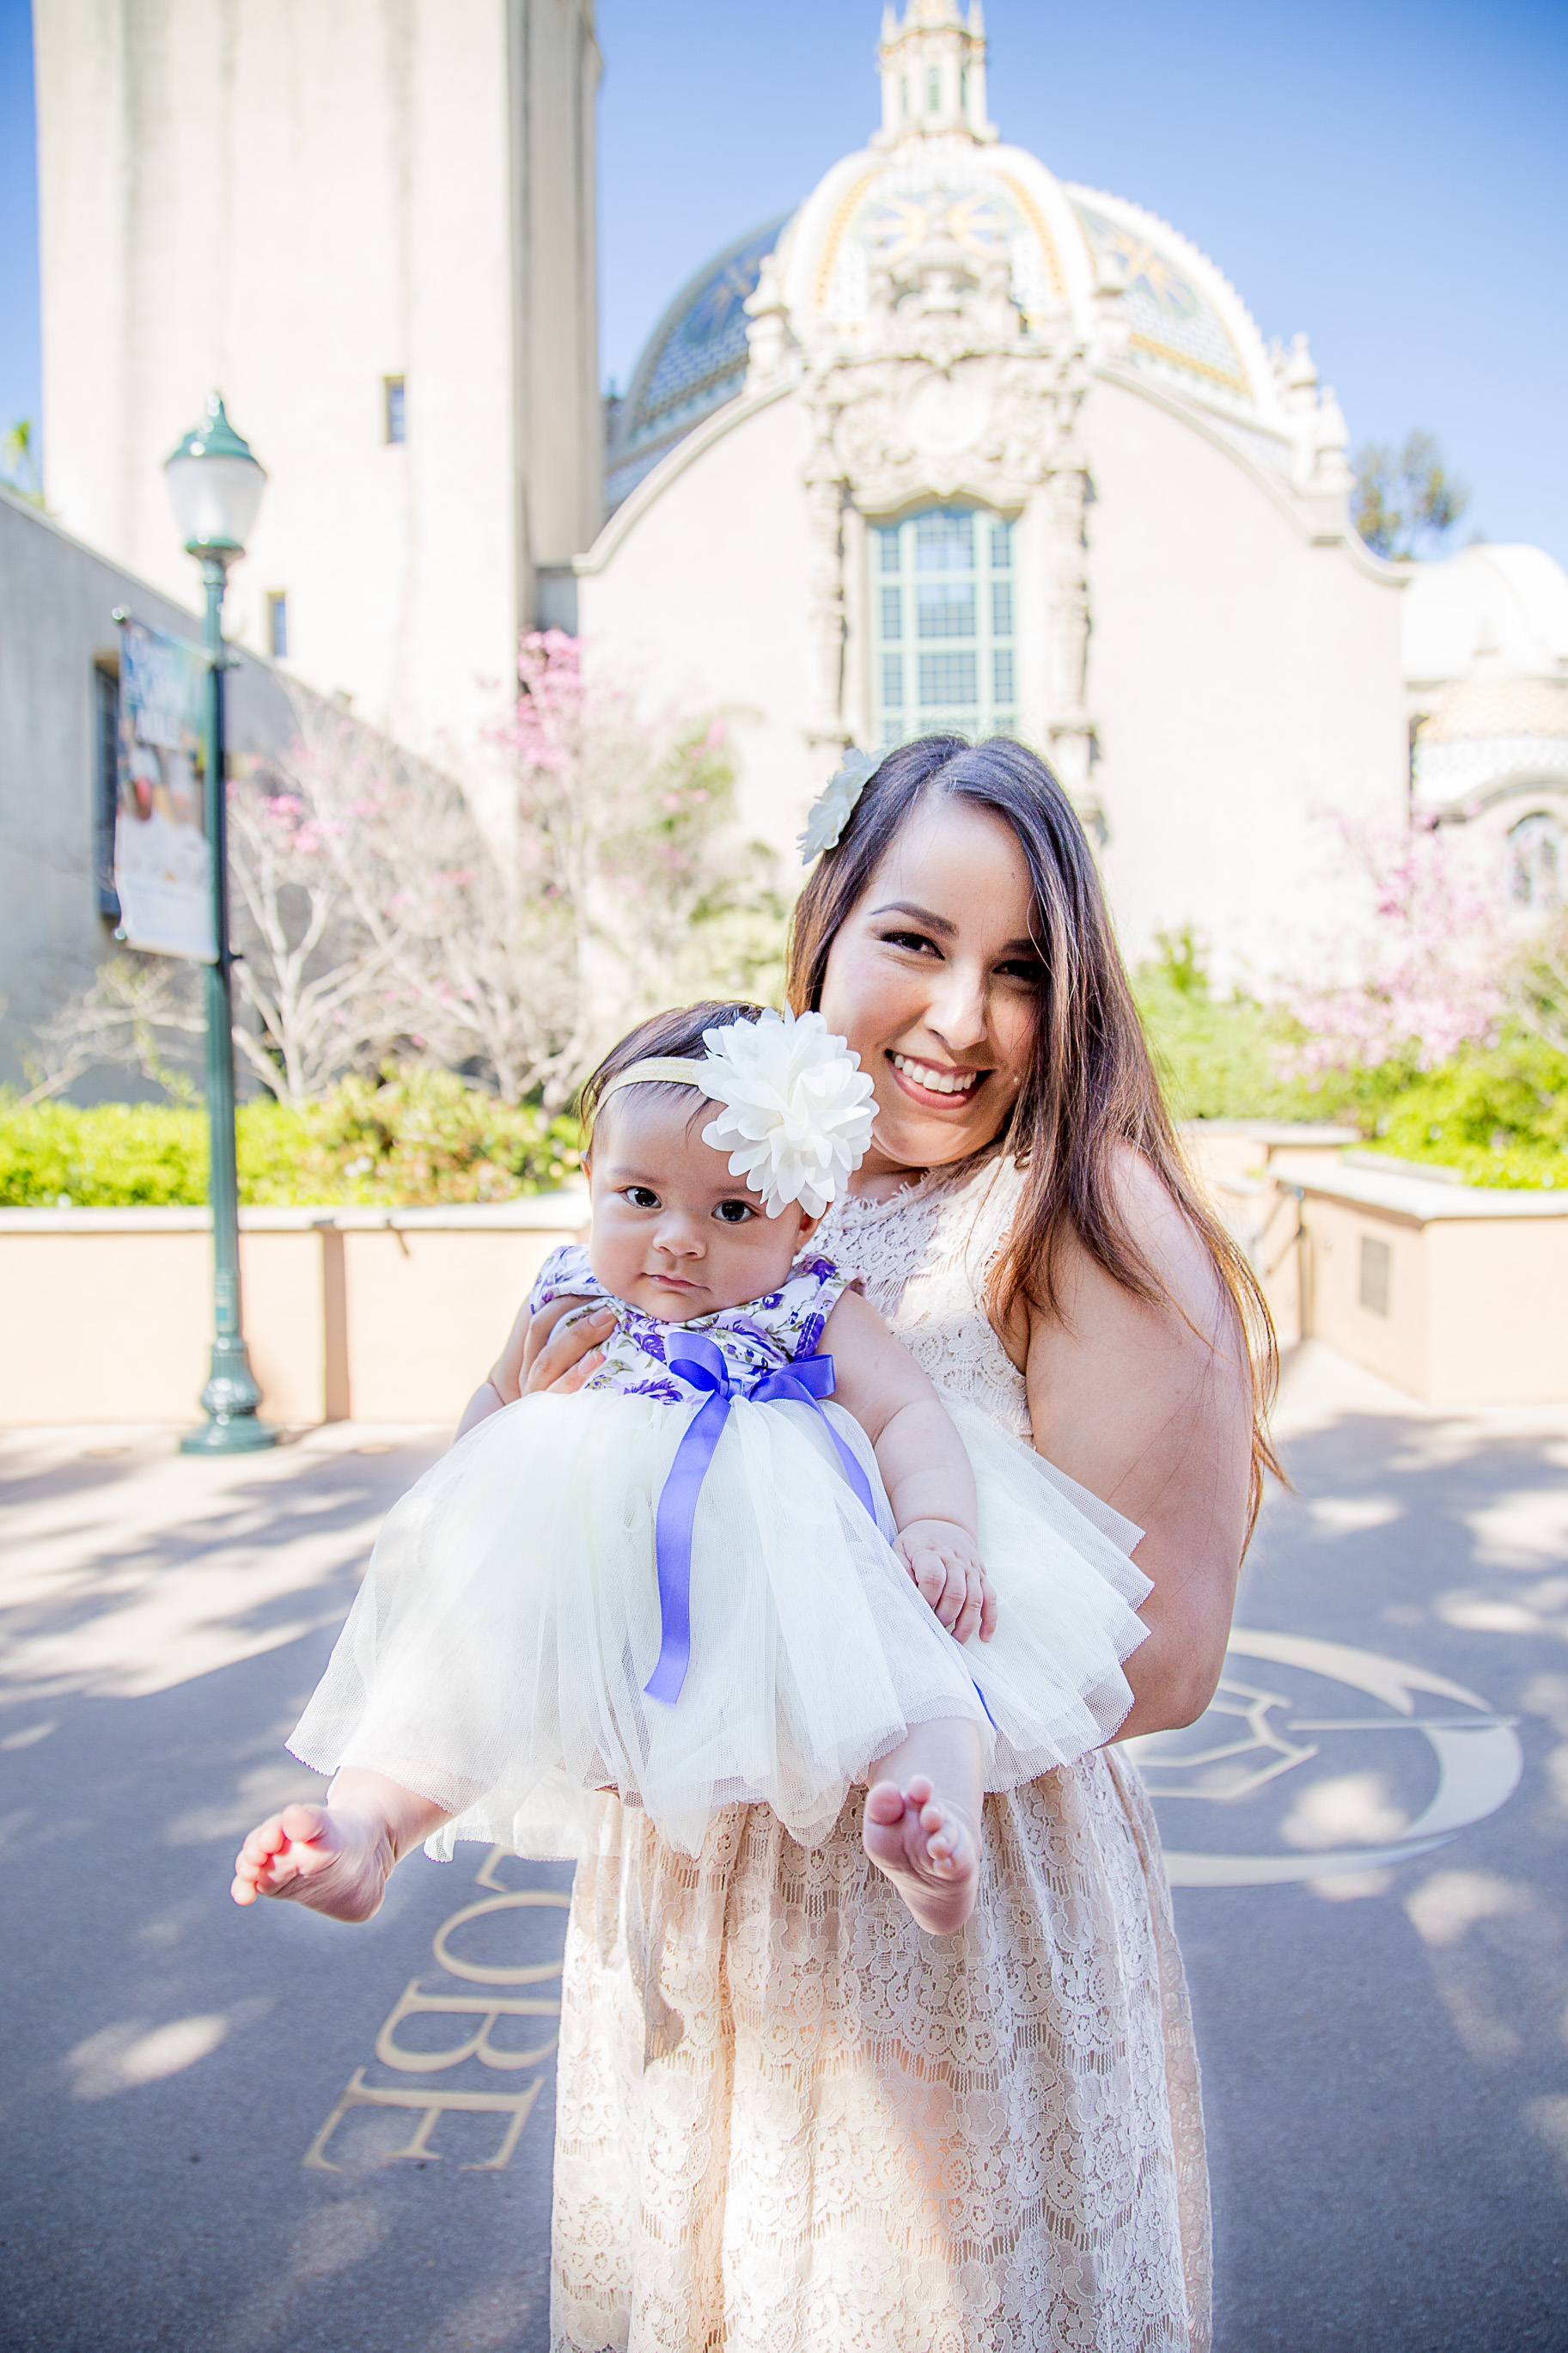 mommy-and-me-balboa-park-wild-flowers-spring (38 of 136).jpg